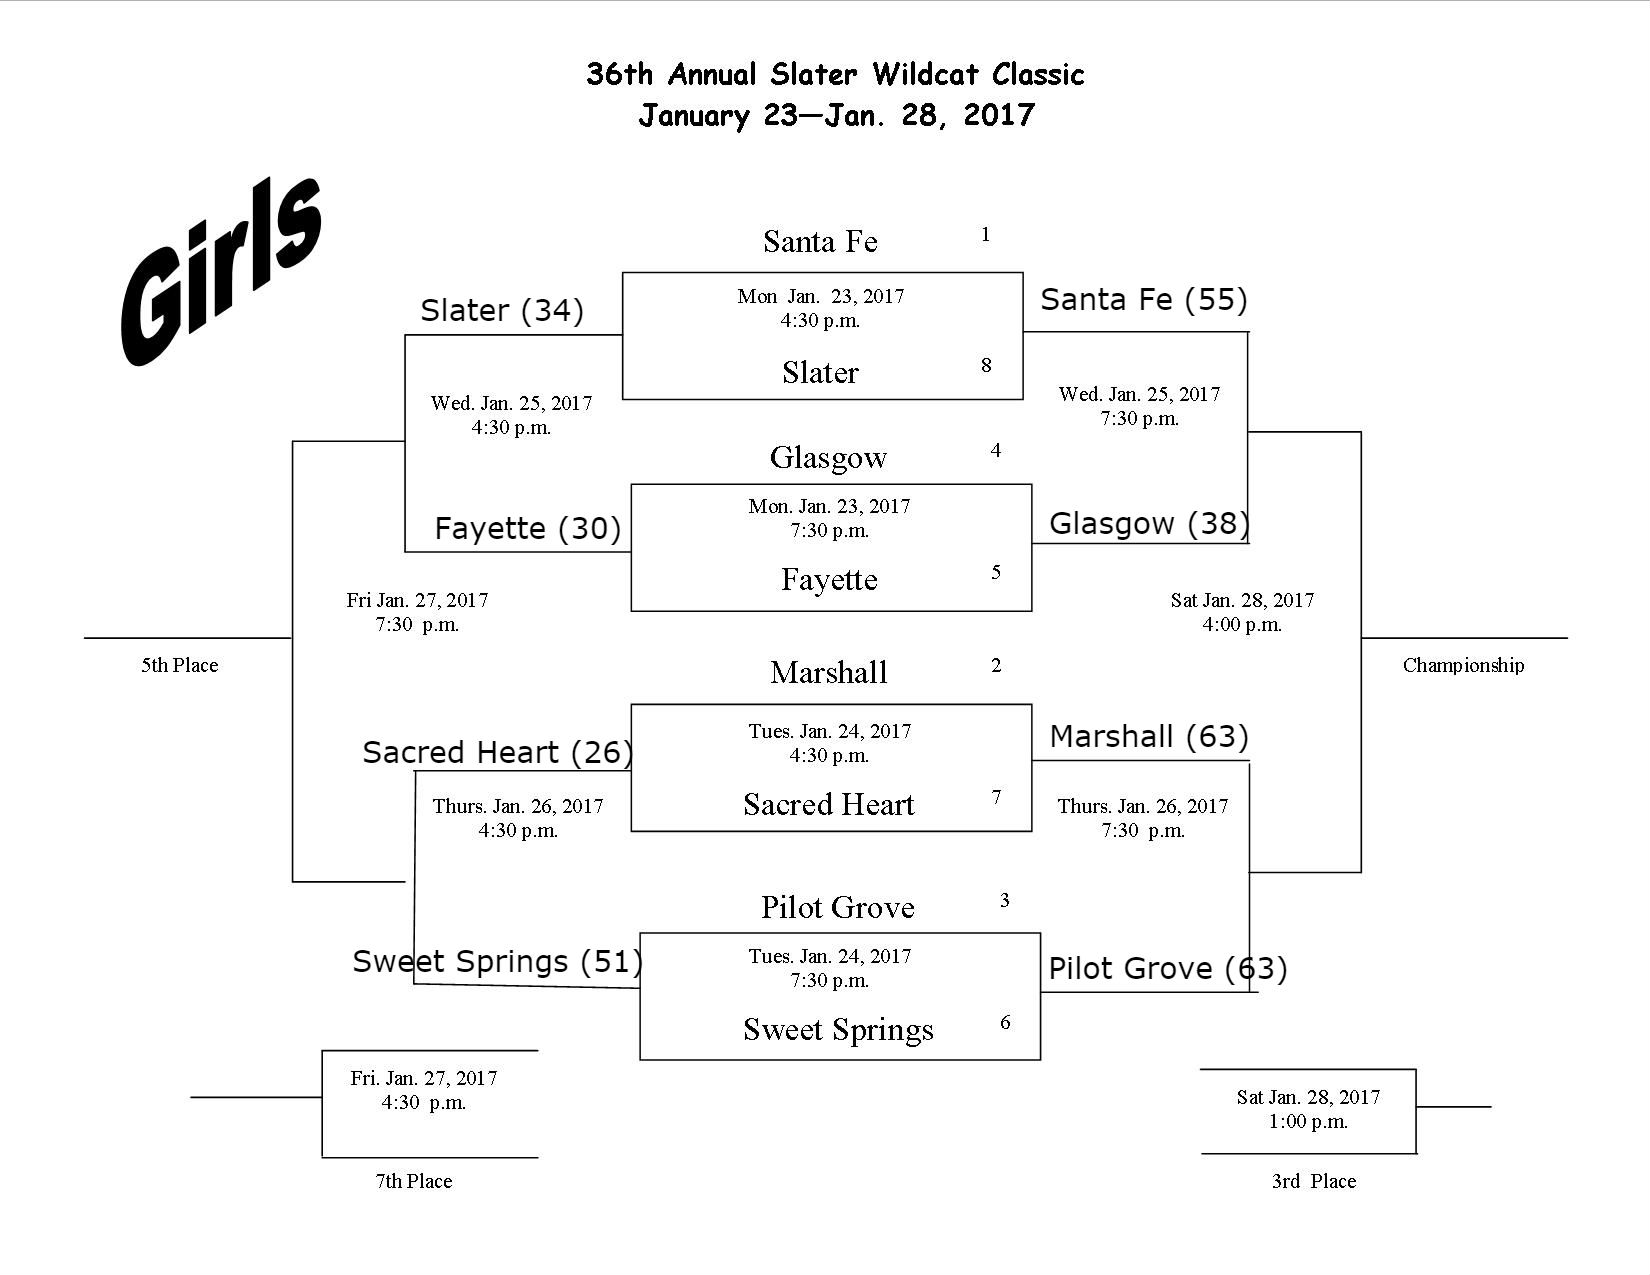 36th Annual Wildcat Classic Bracket Update